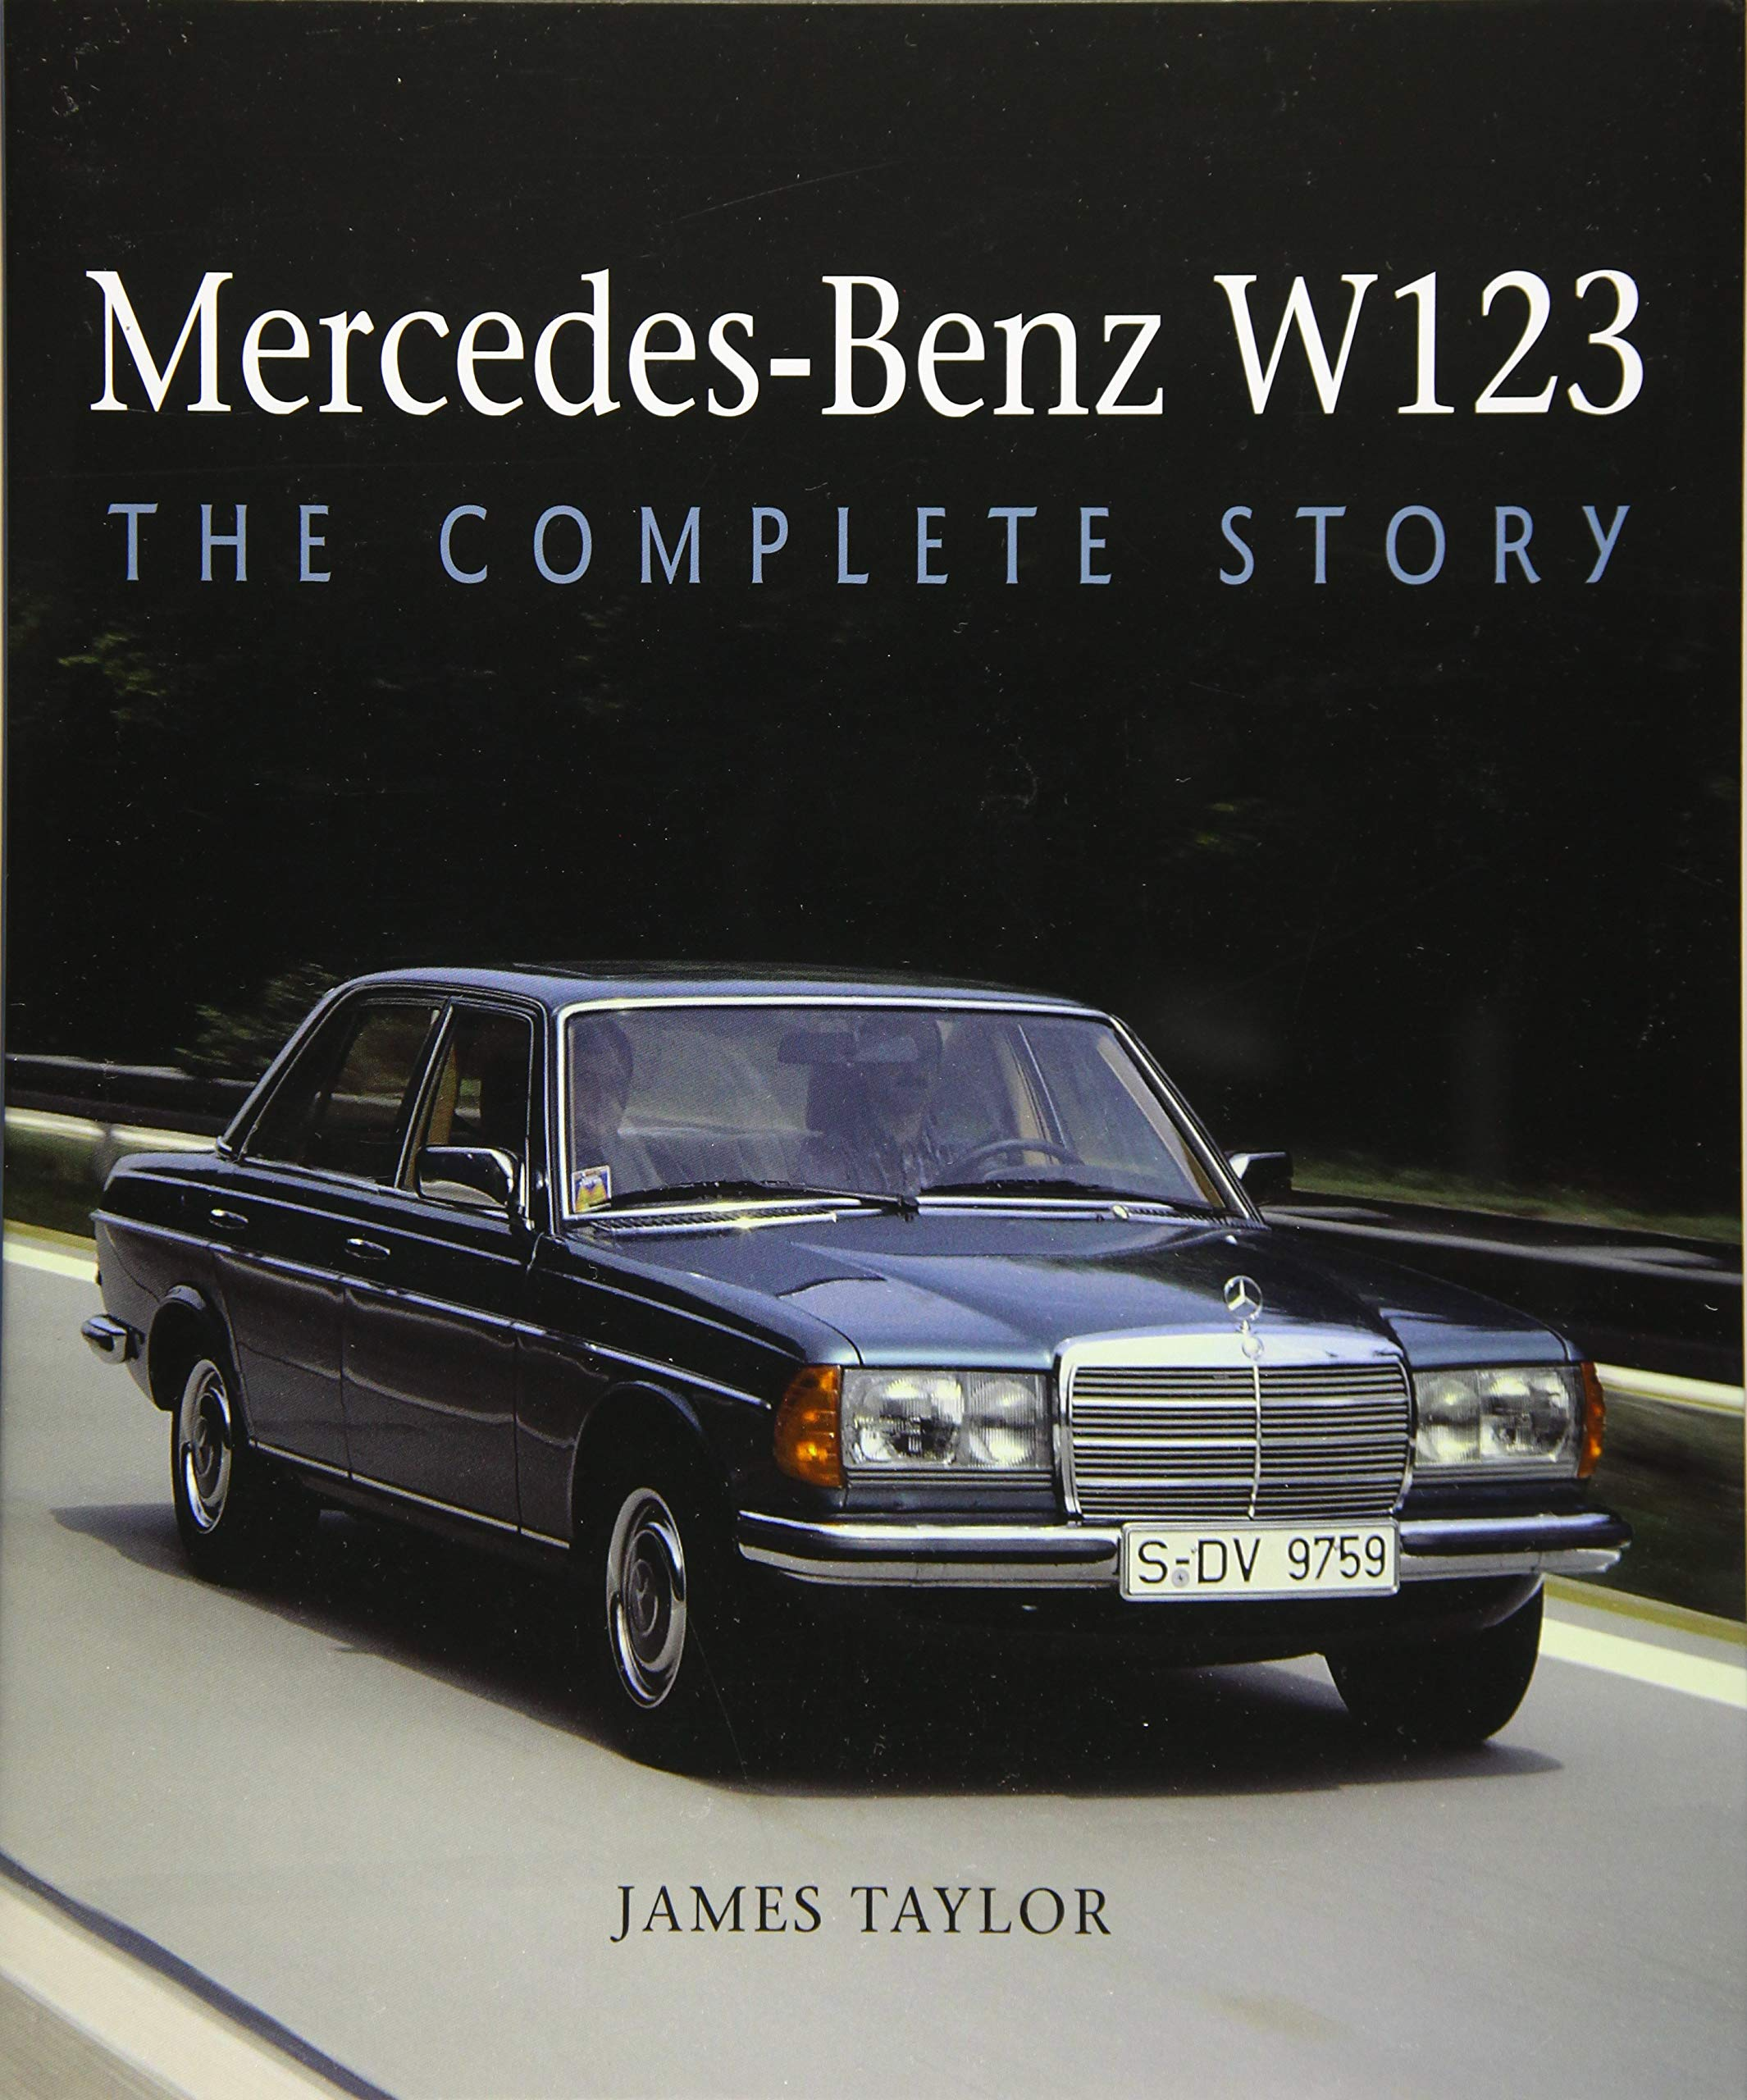 Buy Mercedes-Benz W123: The Complete Story Book Online at Low Prices in  India | Mercedes-Benz W123: The Complete Story Reviews & Ratings - Amazon.in